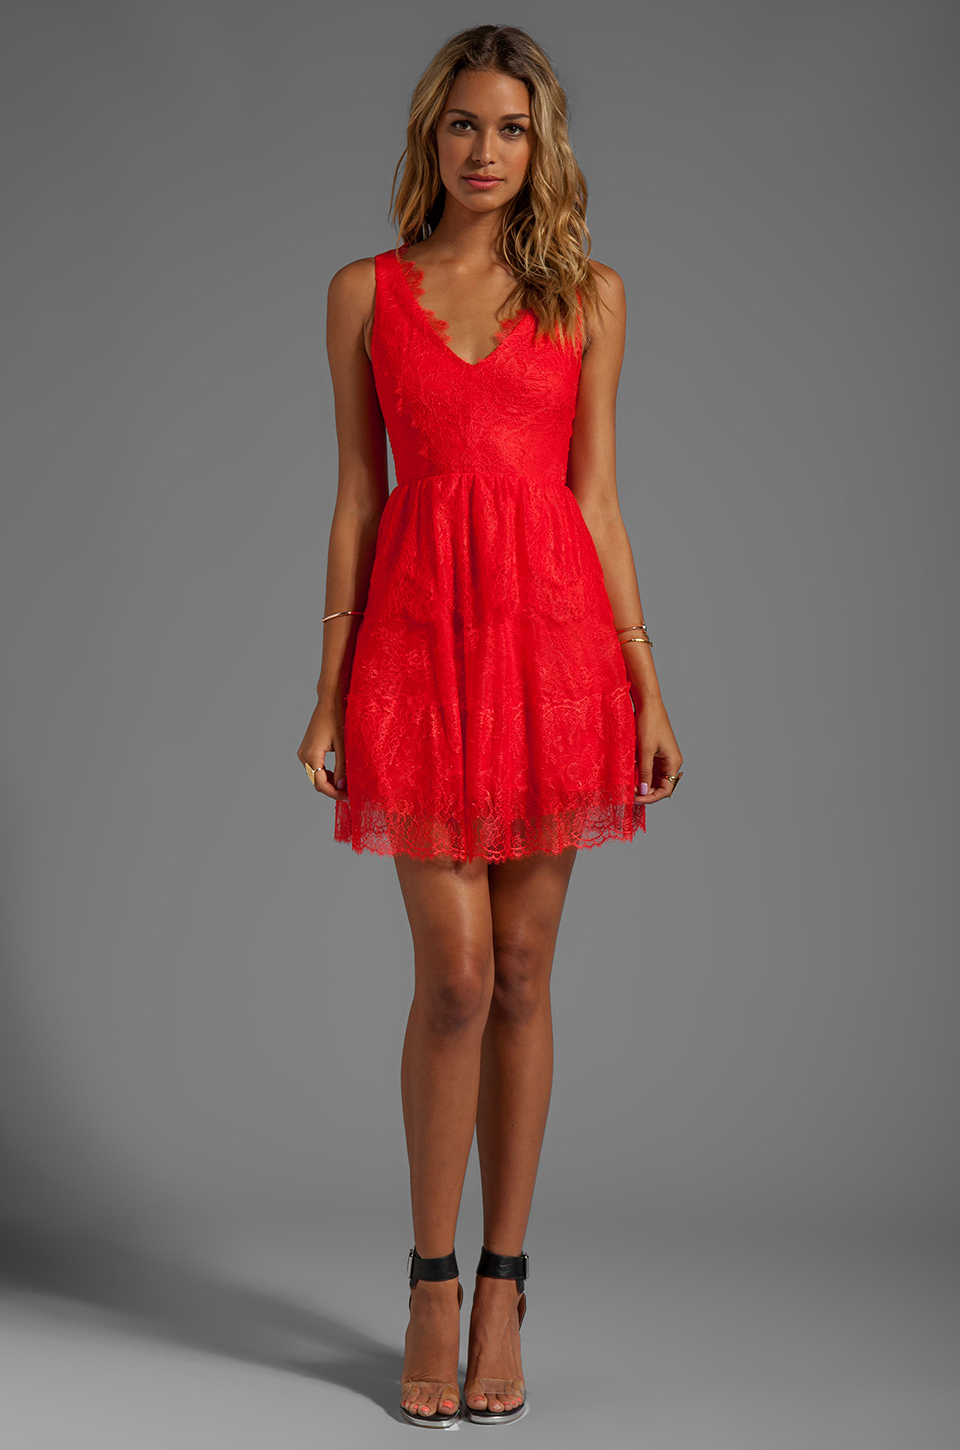 Lyst - Bcbgmaxazria Sleeveless Lace Dress in Red in Red